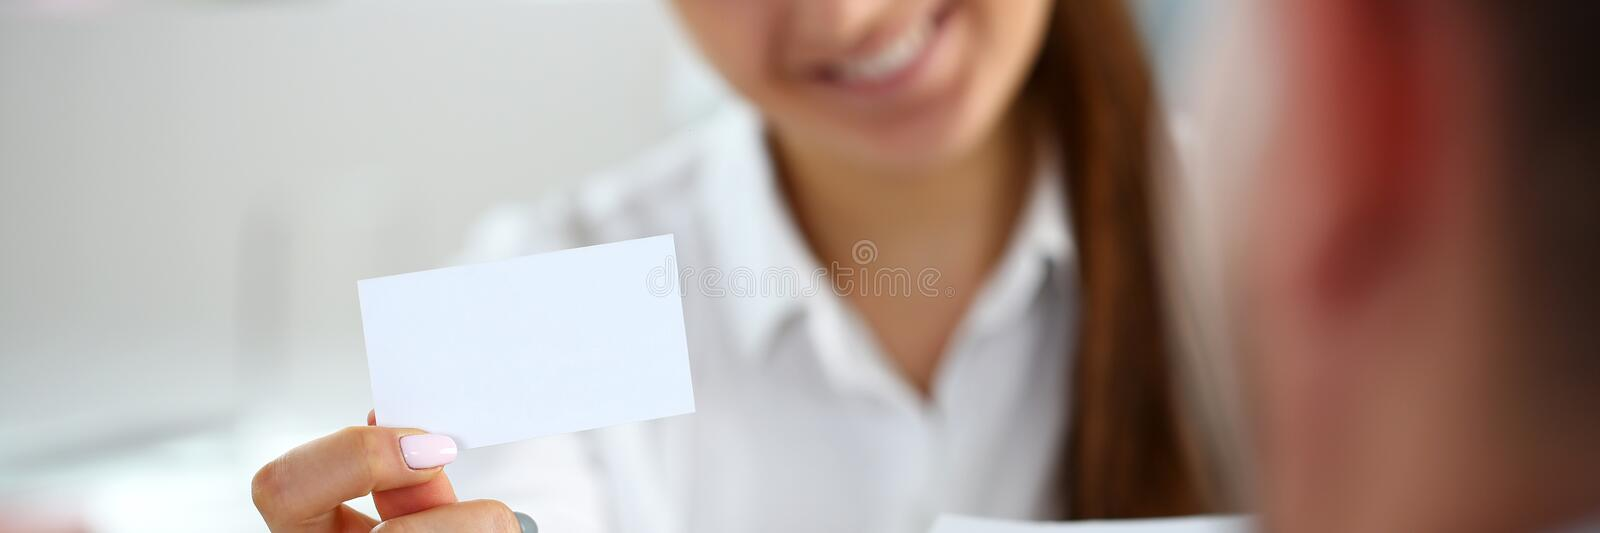 Female arm in suit give blank calling card to visitor. Closeup. White collar colleagues company name exchange job interview sale clerk id executive or ceo stock photography